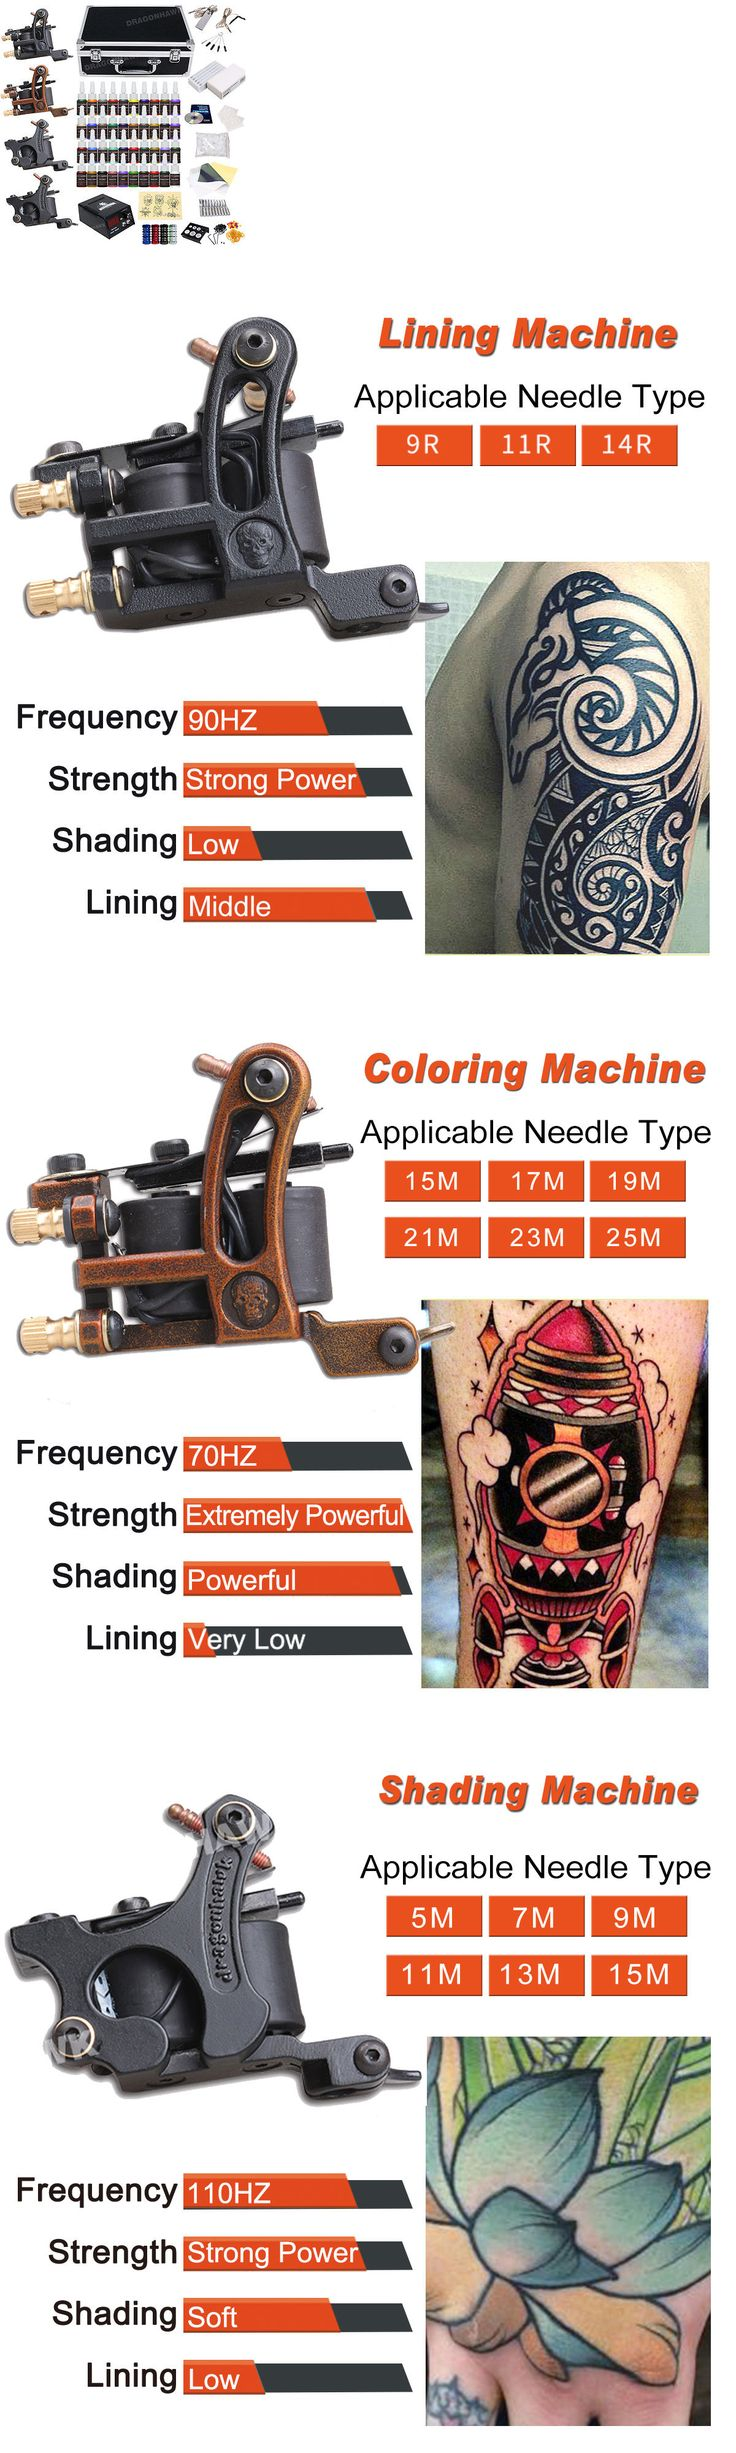 How to design a new school tattoo leaftv - Tattoo Complete Kits Tattoo Kit 4 Machine Guns 40 Color Inks Set Equipment Power Supply